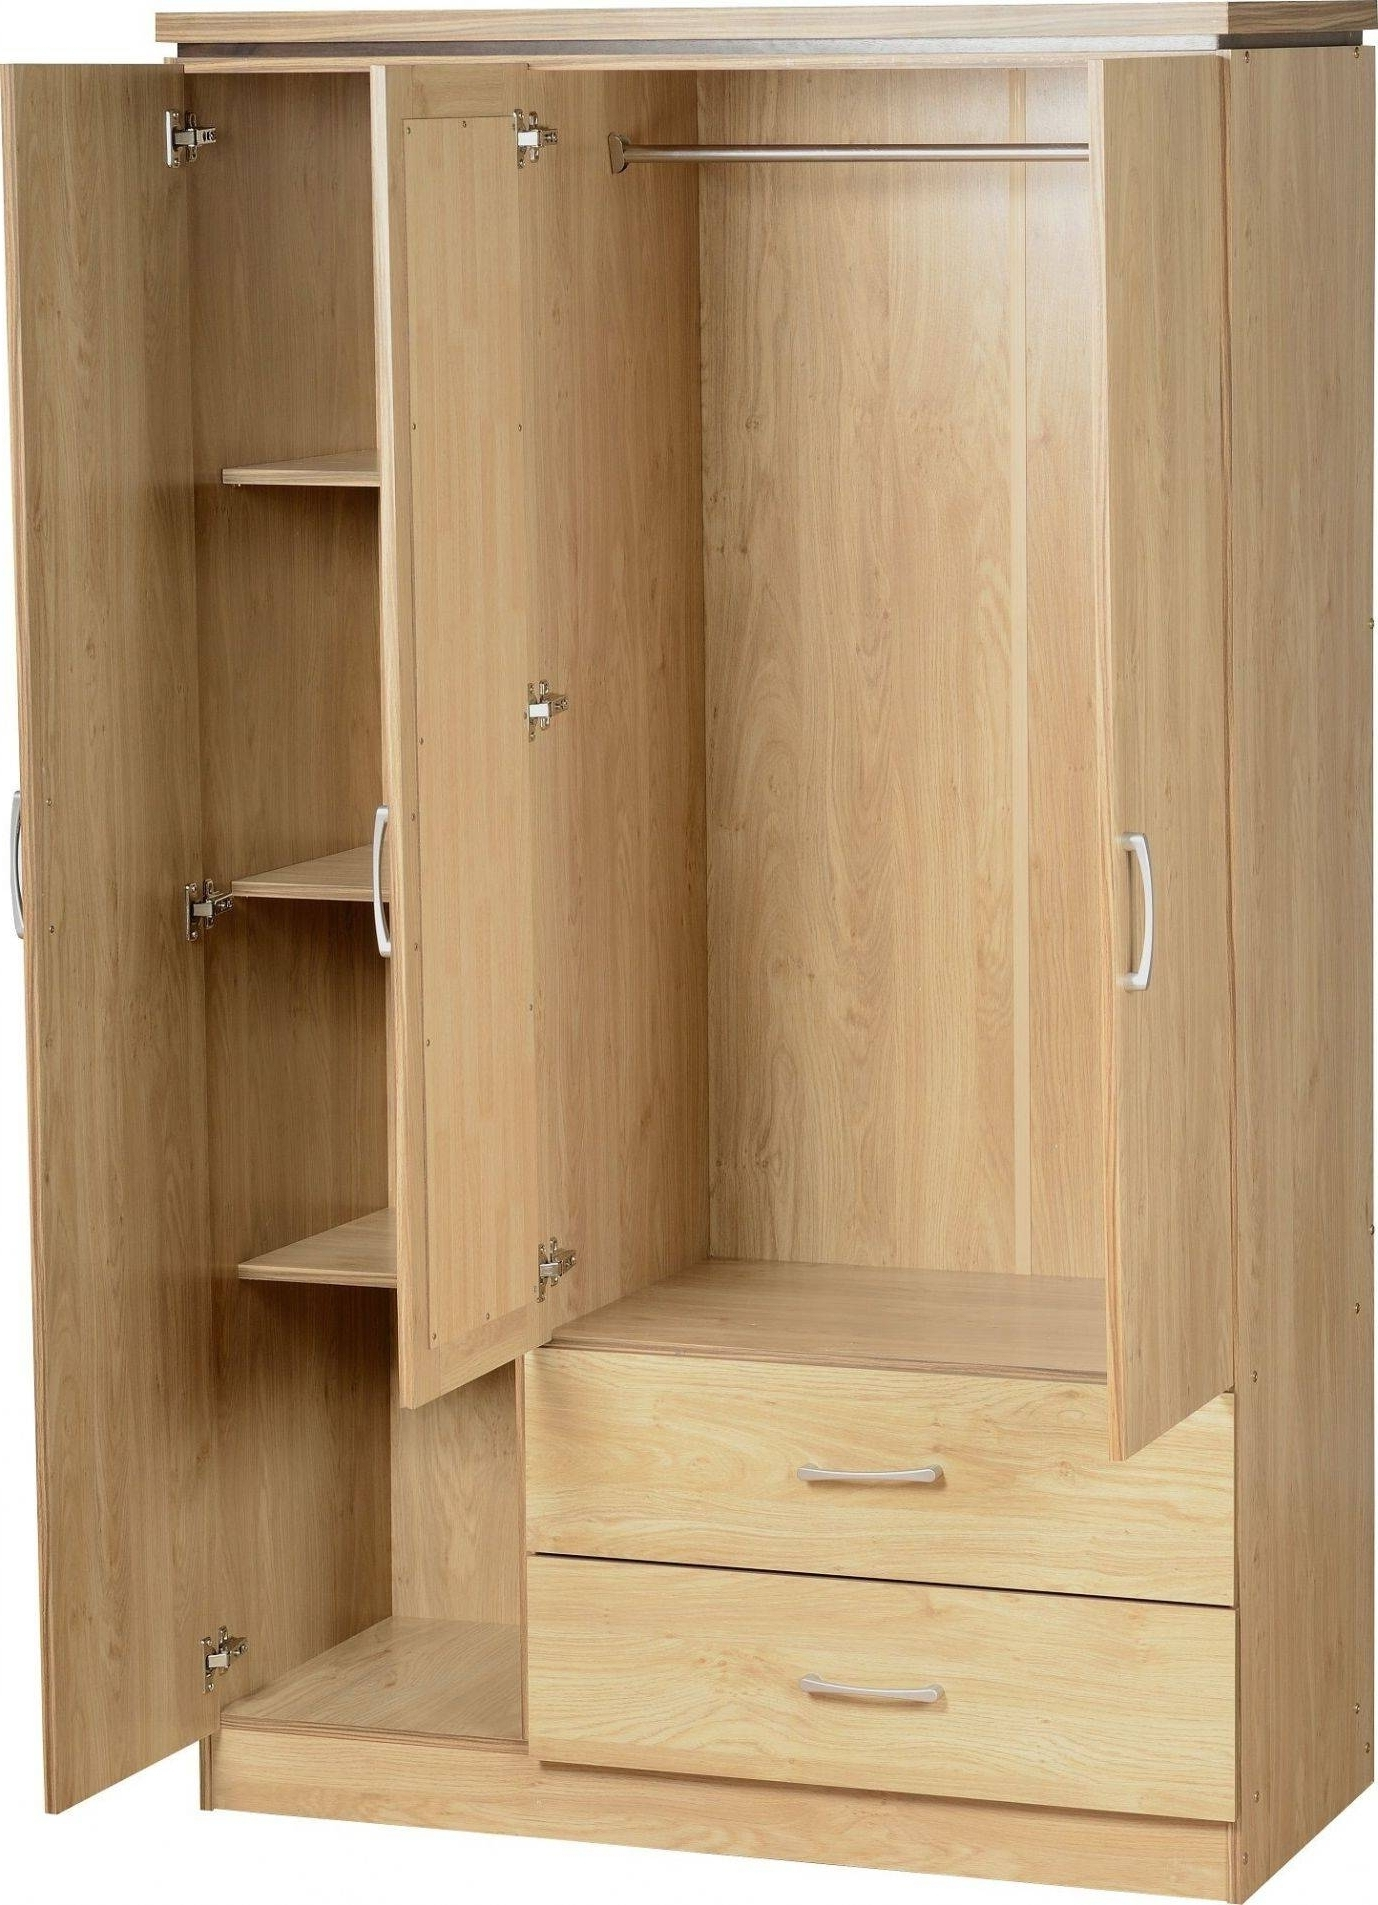 Childrens Wardrobe With Shelves And Drawers • Drawer Ideas Regarding Fashionable Childrens Wardrobes With Drawers And Shelves (View 6 of 15)